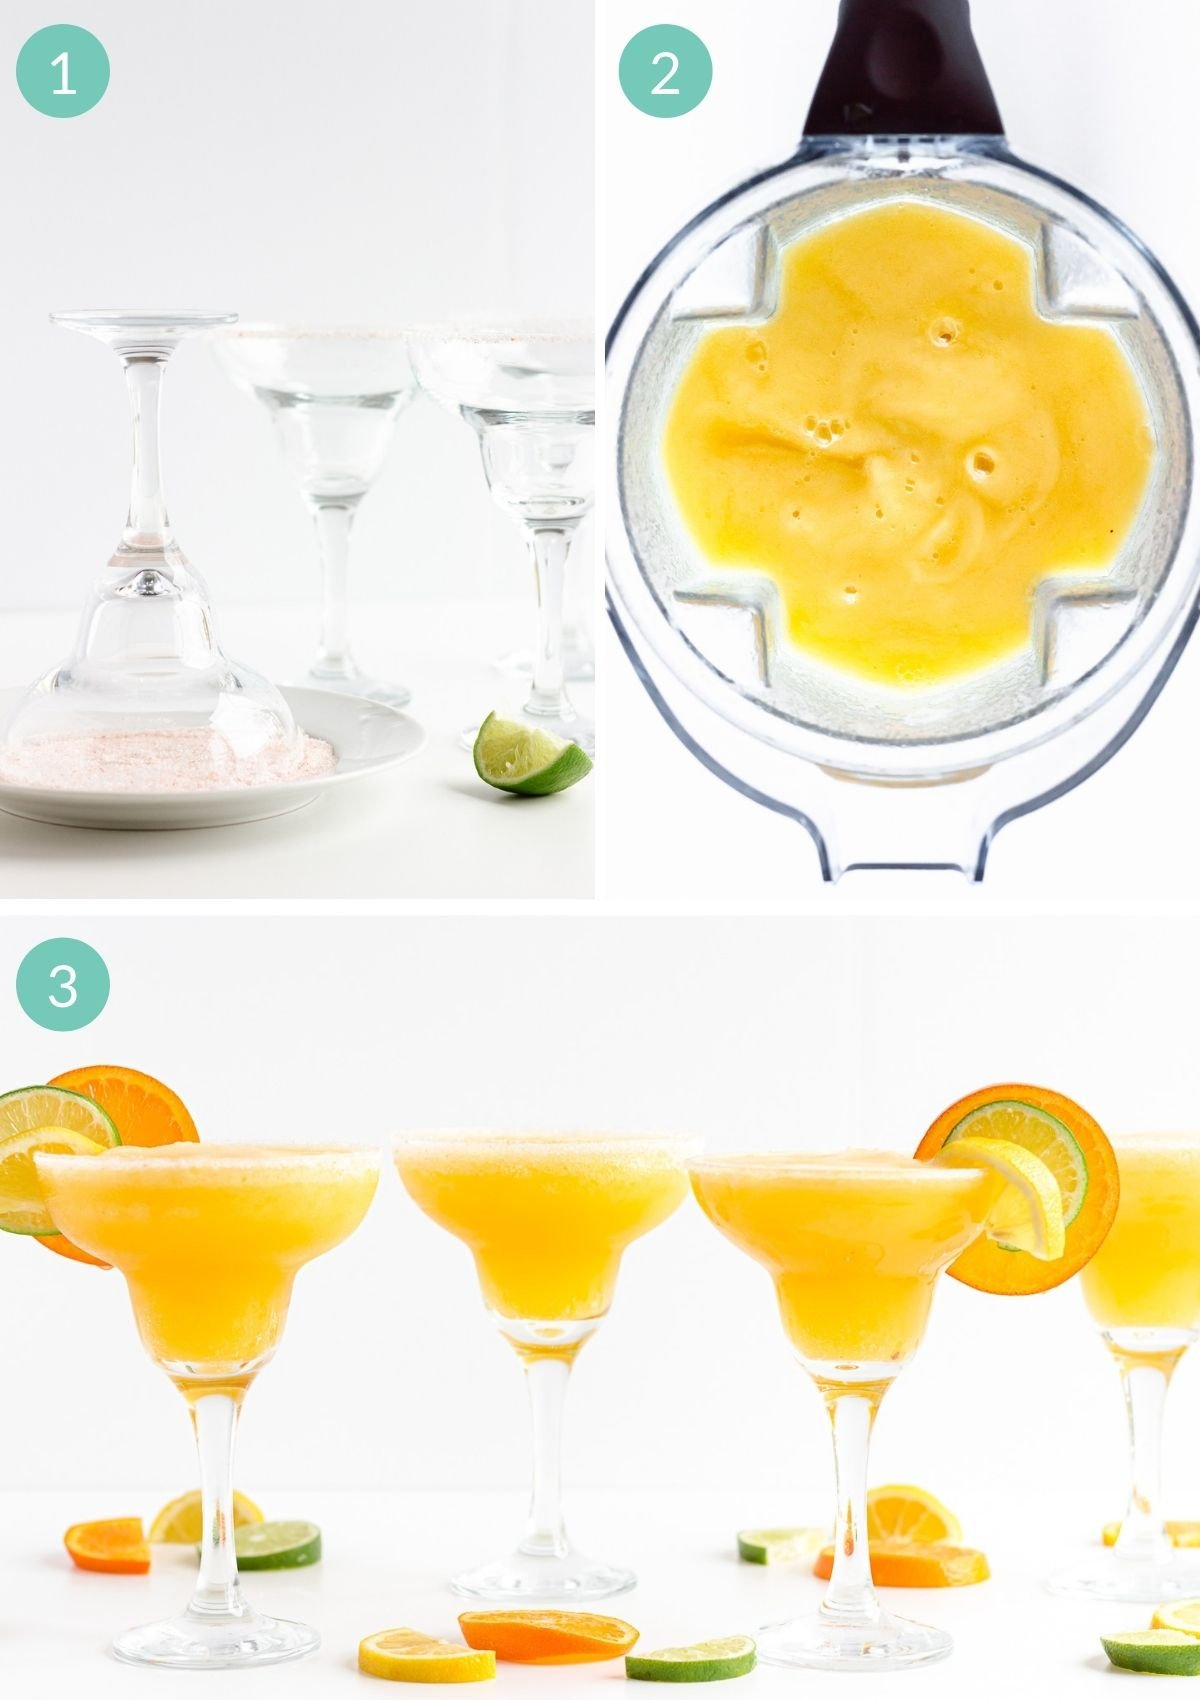 Step by step photo collage showing how to make orange lemon lime blender margaritas.